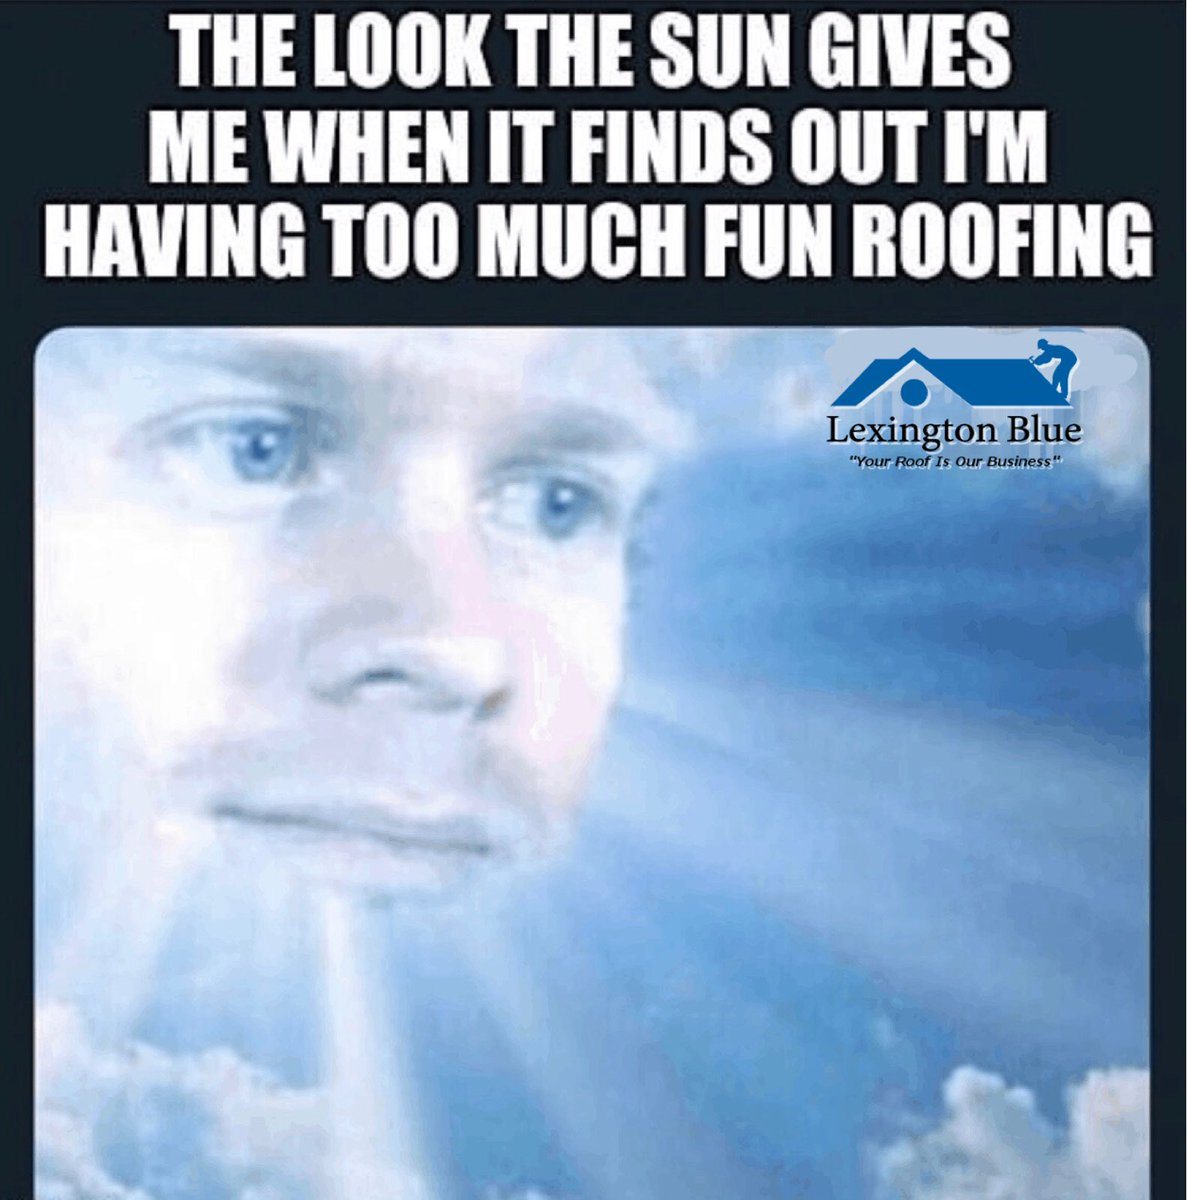 It's heating up! And right along with the weather, so are the Lexington Blue Roofing Crews! From repairs to full restoration & replacement, we are ready to help our neighbors w all of their roofing, siding and gutter needs, no matter how hard the sun glares at us! #roofing #memepic.twitter.com/9qgznmHslb